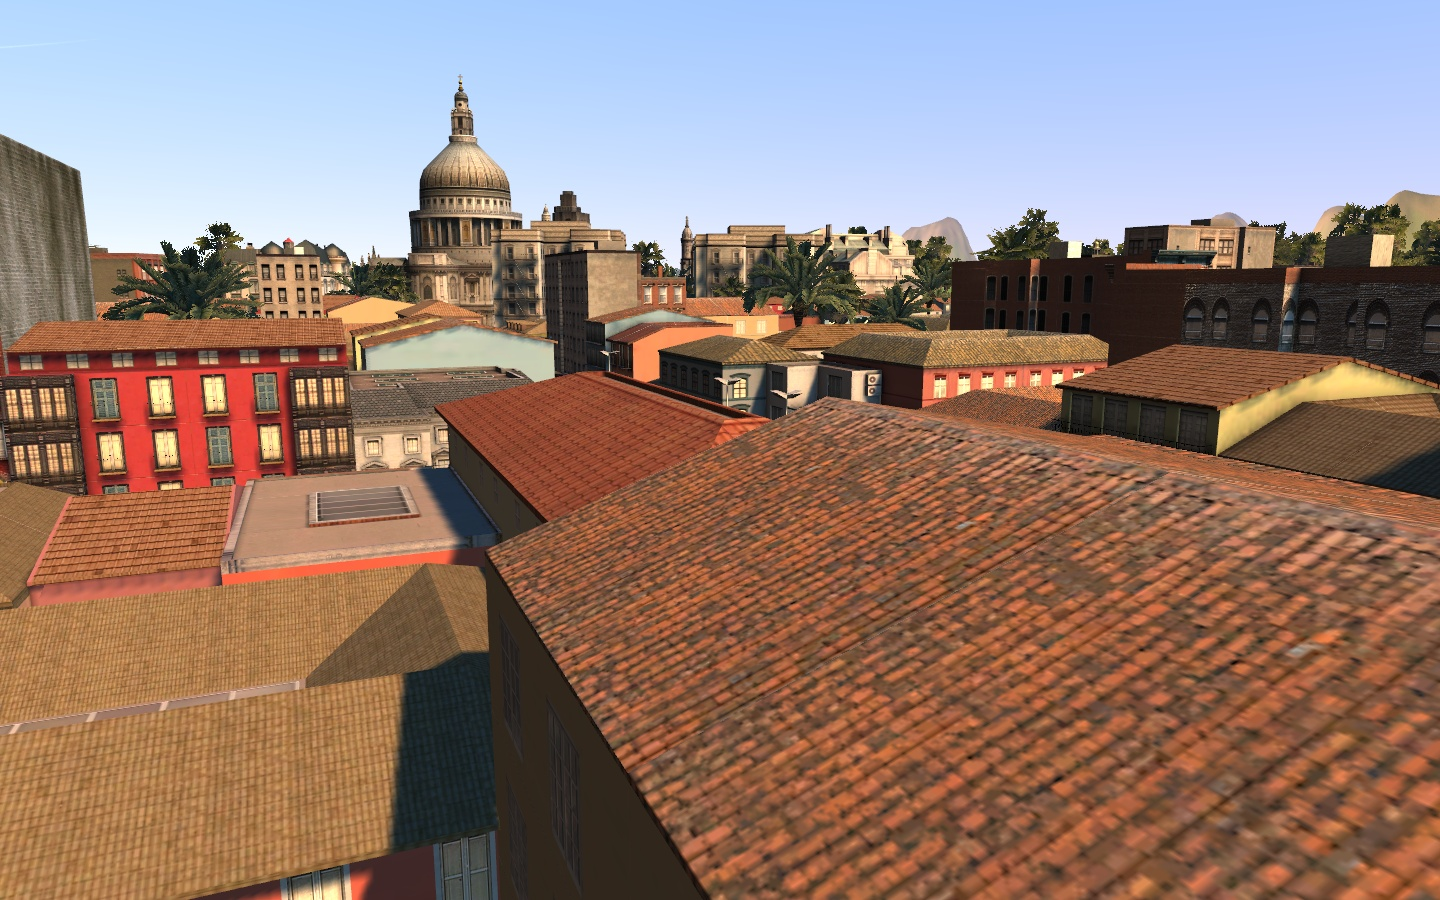 cxl_screenshot_san cristobal_37.jpg